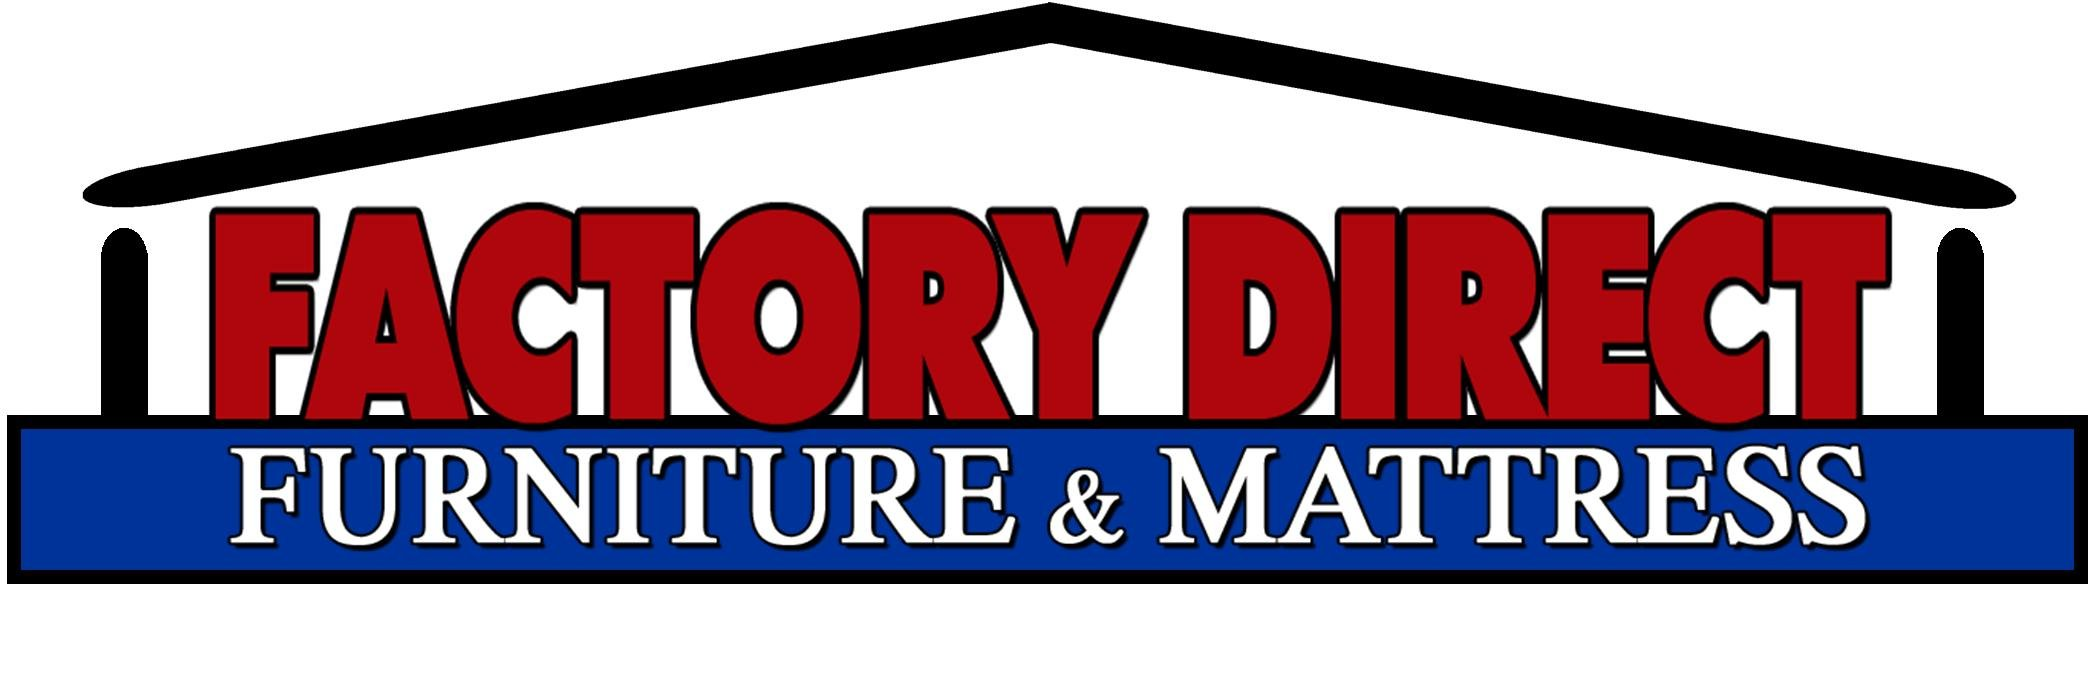 Factory Direct Mattress, Inc.